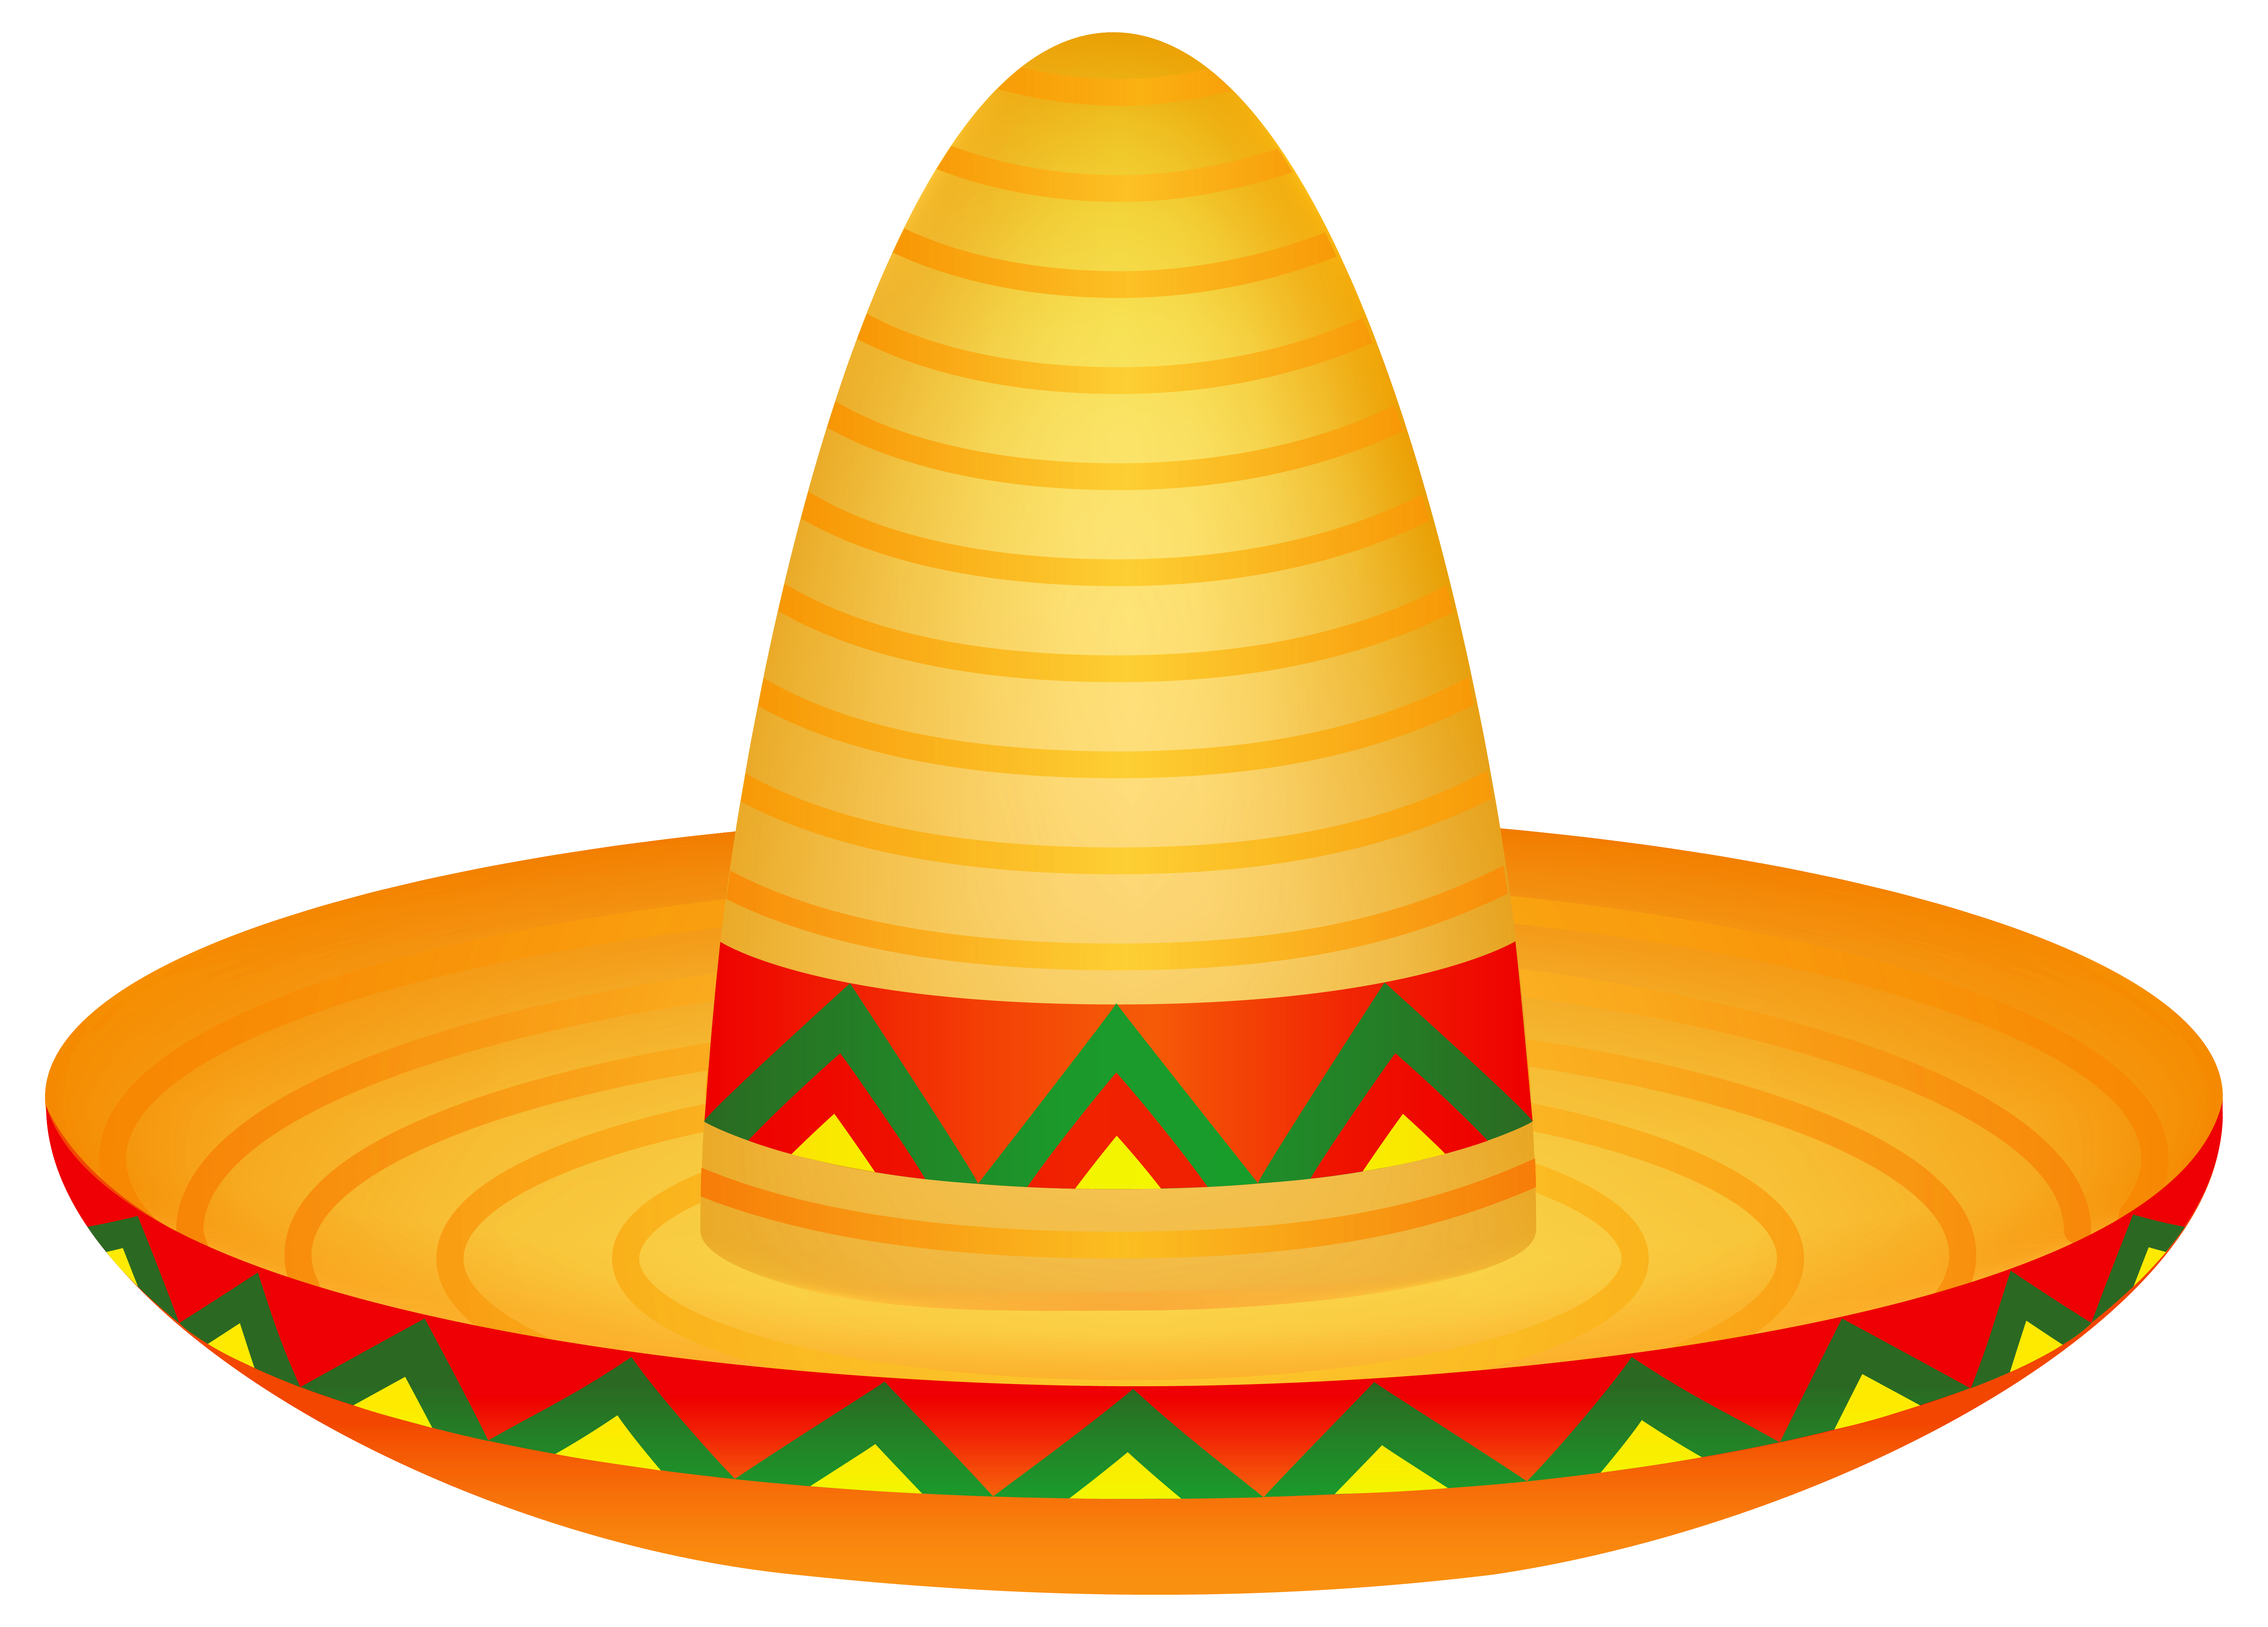 6395x4587 Png Mexican Hat Transparent Mexican Hat.png Images. Pluspng